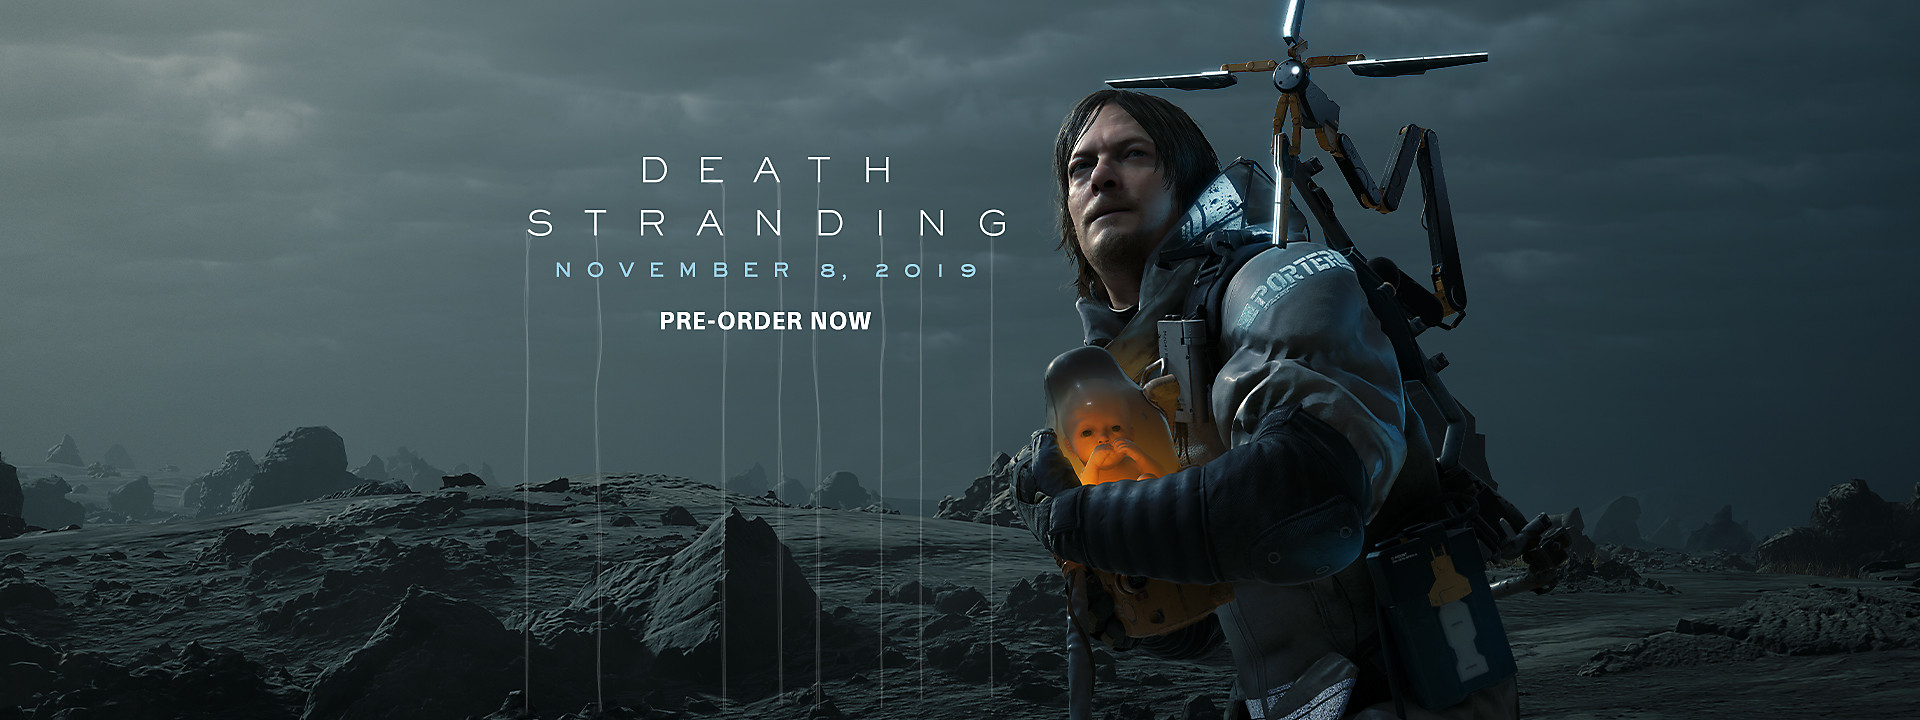 Death Stranding - Coming November 8